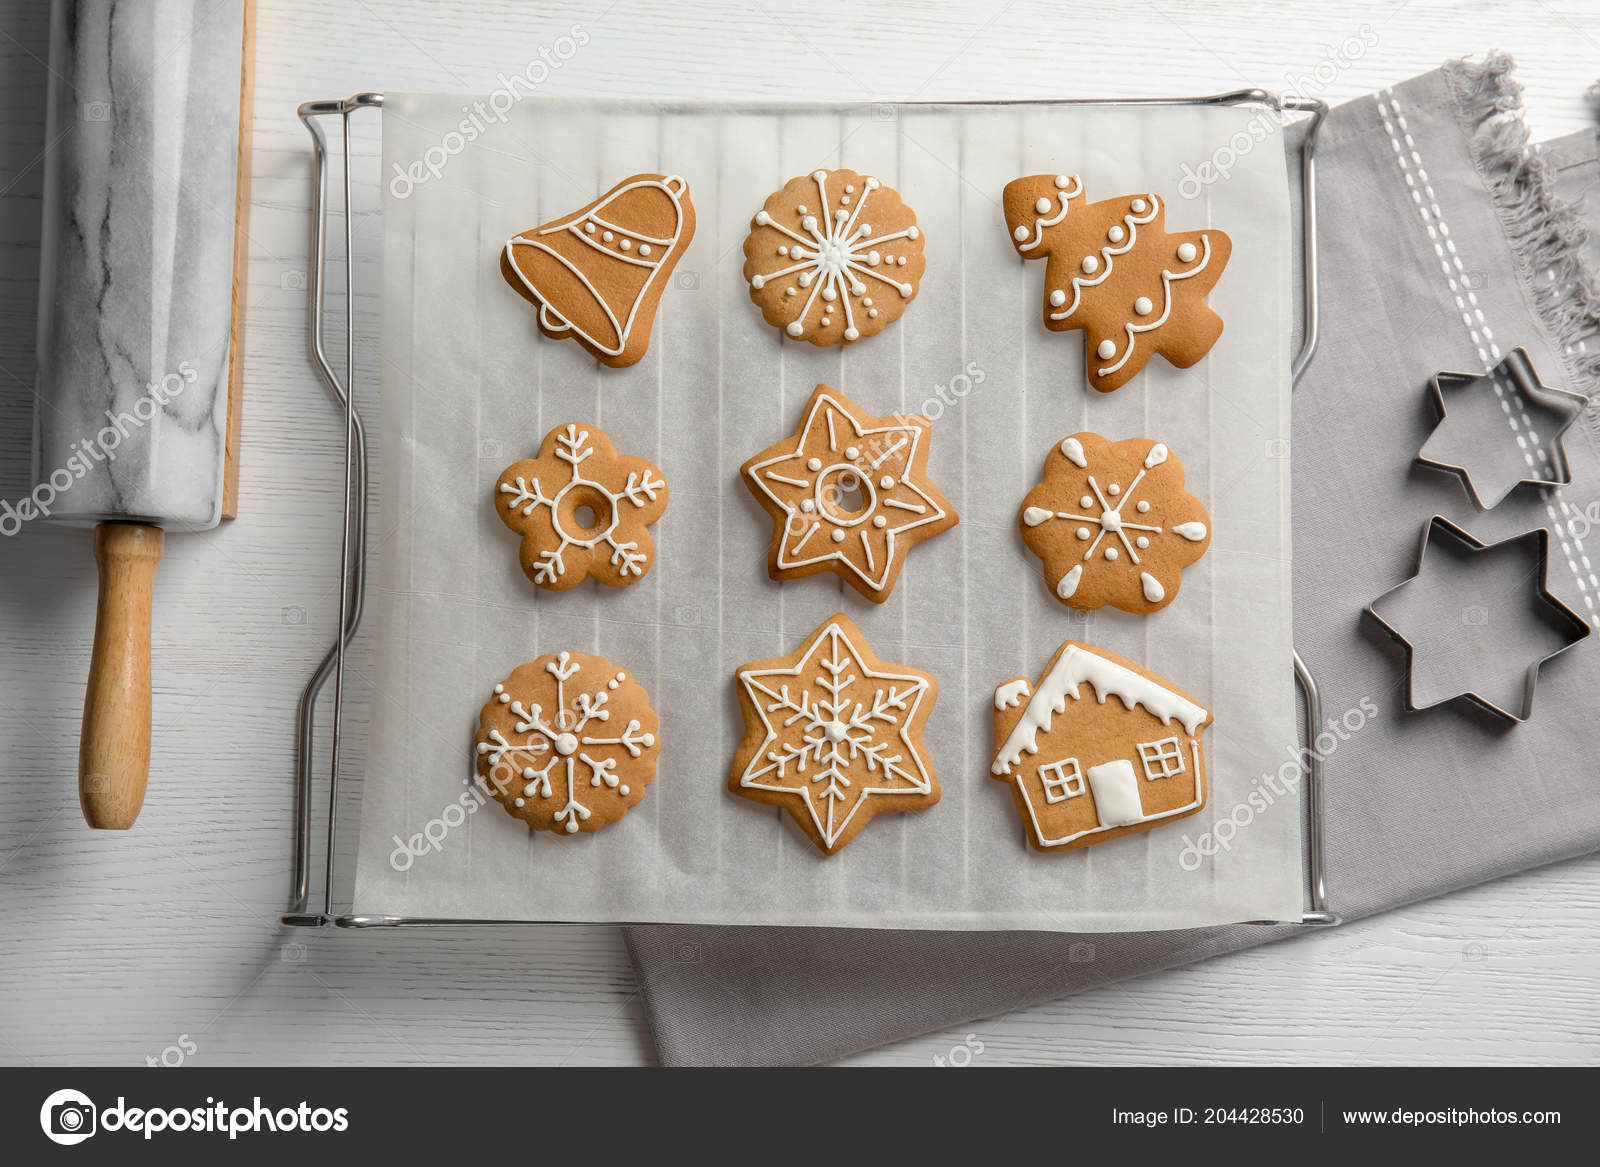 Tasty Decorated Christmas Cookies Baking Table Top View Stock